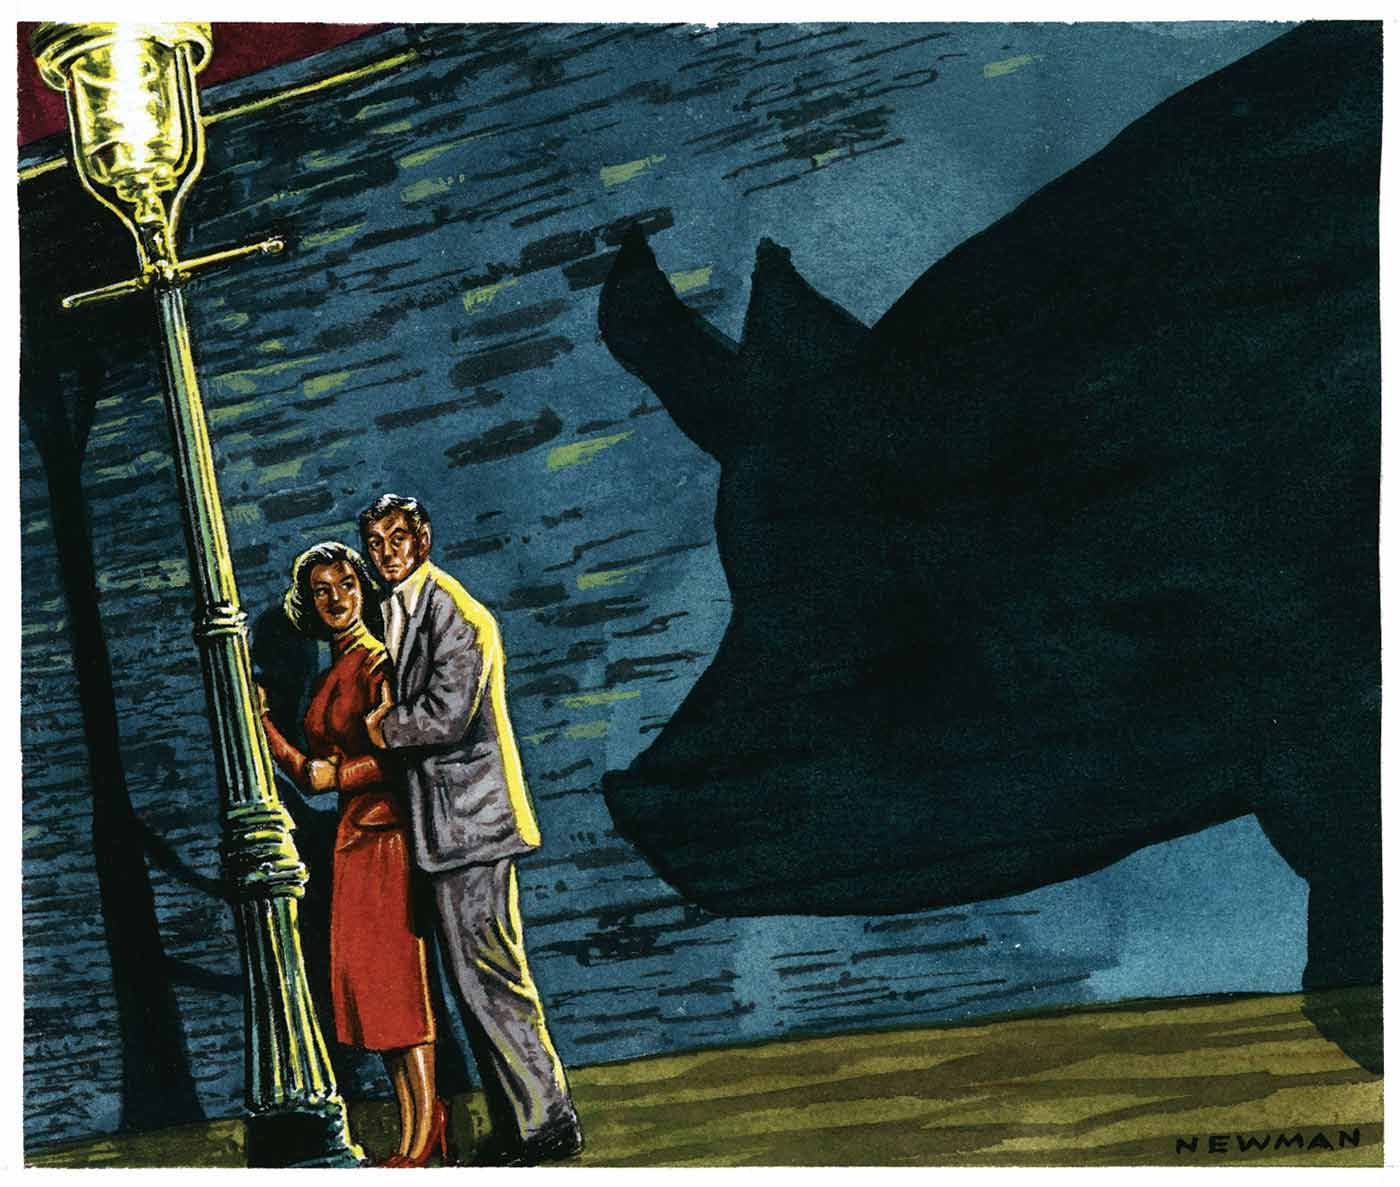 A colour illustration depicting a man and a woman standing beneath a street lamp. The light pole is at the far left of the cartoon. The woman stands closest to it, facing the pole, wearing a red dress. The man stands closely behind her, wearing a grey suit. He holds her left upper arm. Behind them is a large blue wall, onto which projects the large shadow of a pig. The pig itself is unseen, however the man and woman both look apprehensively in its direction. - click to view larger image